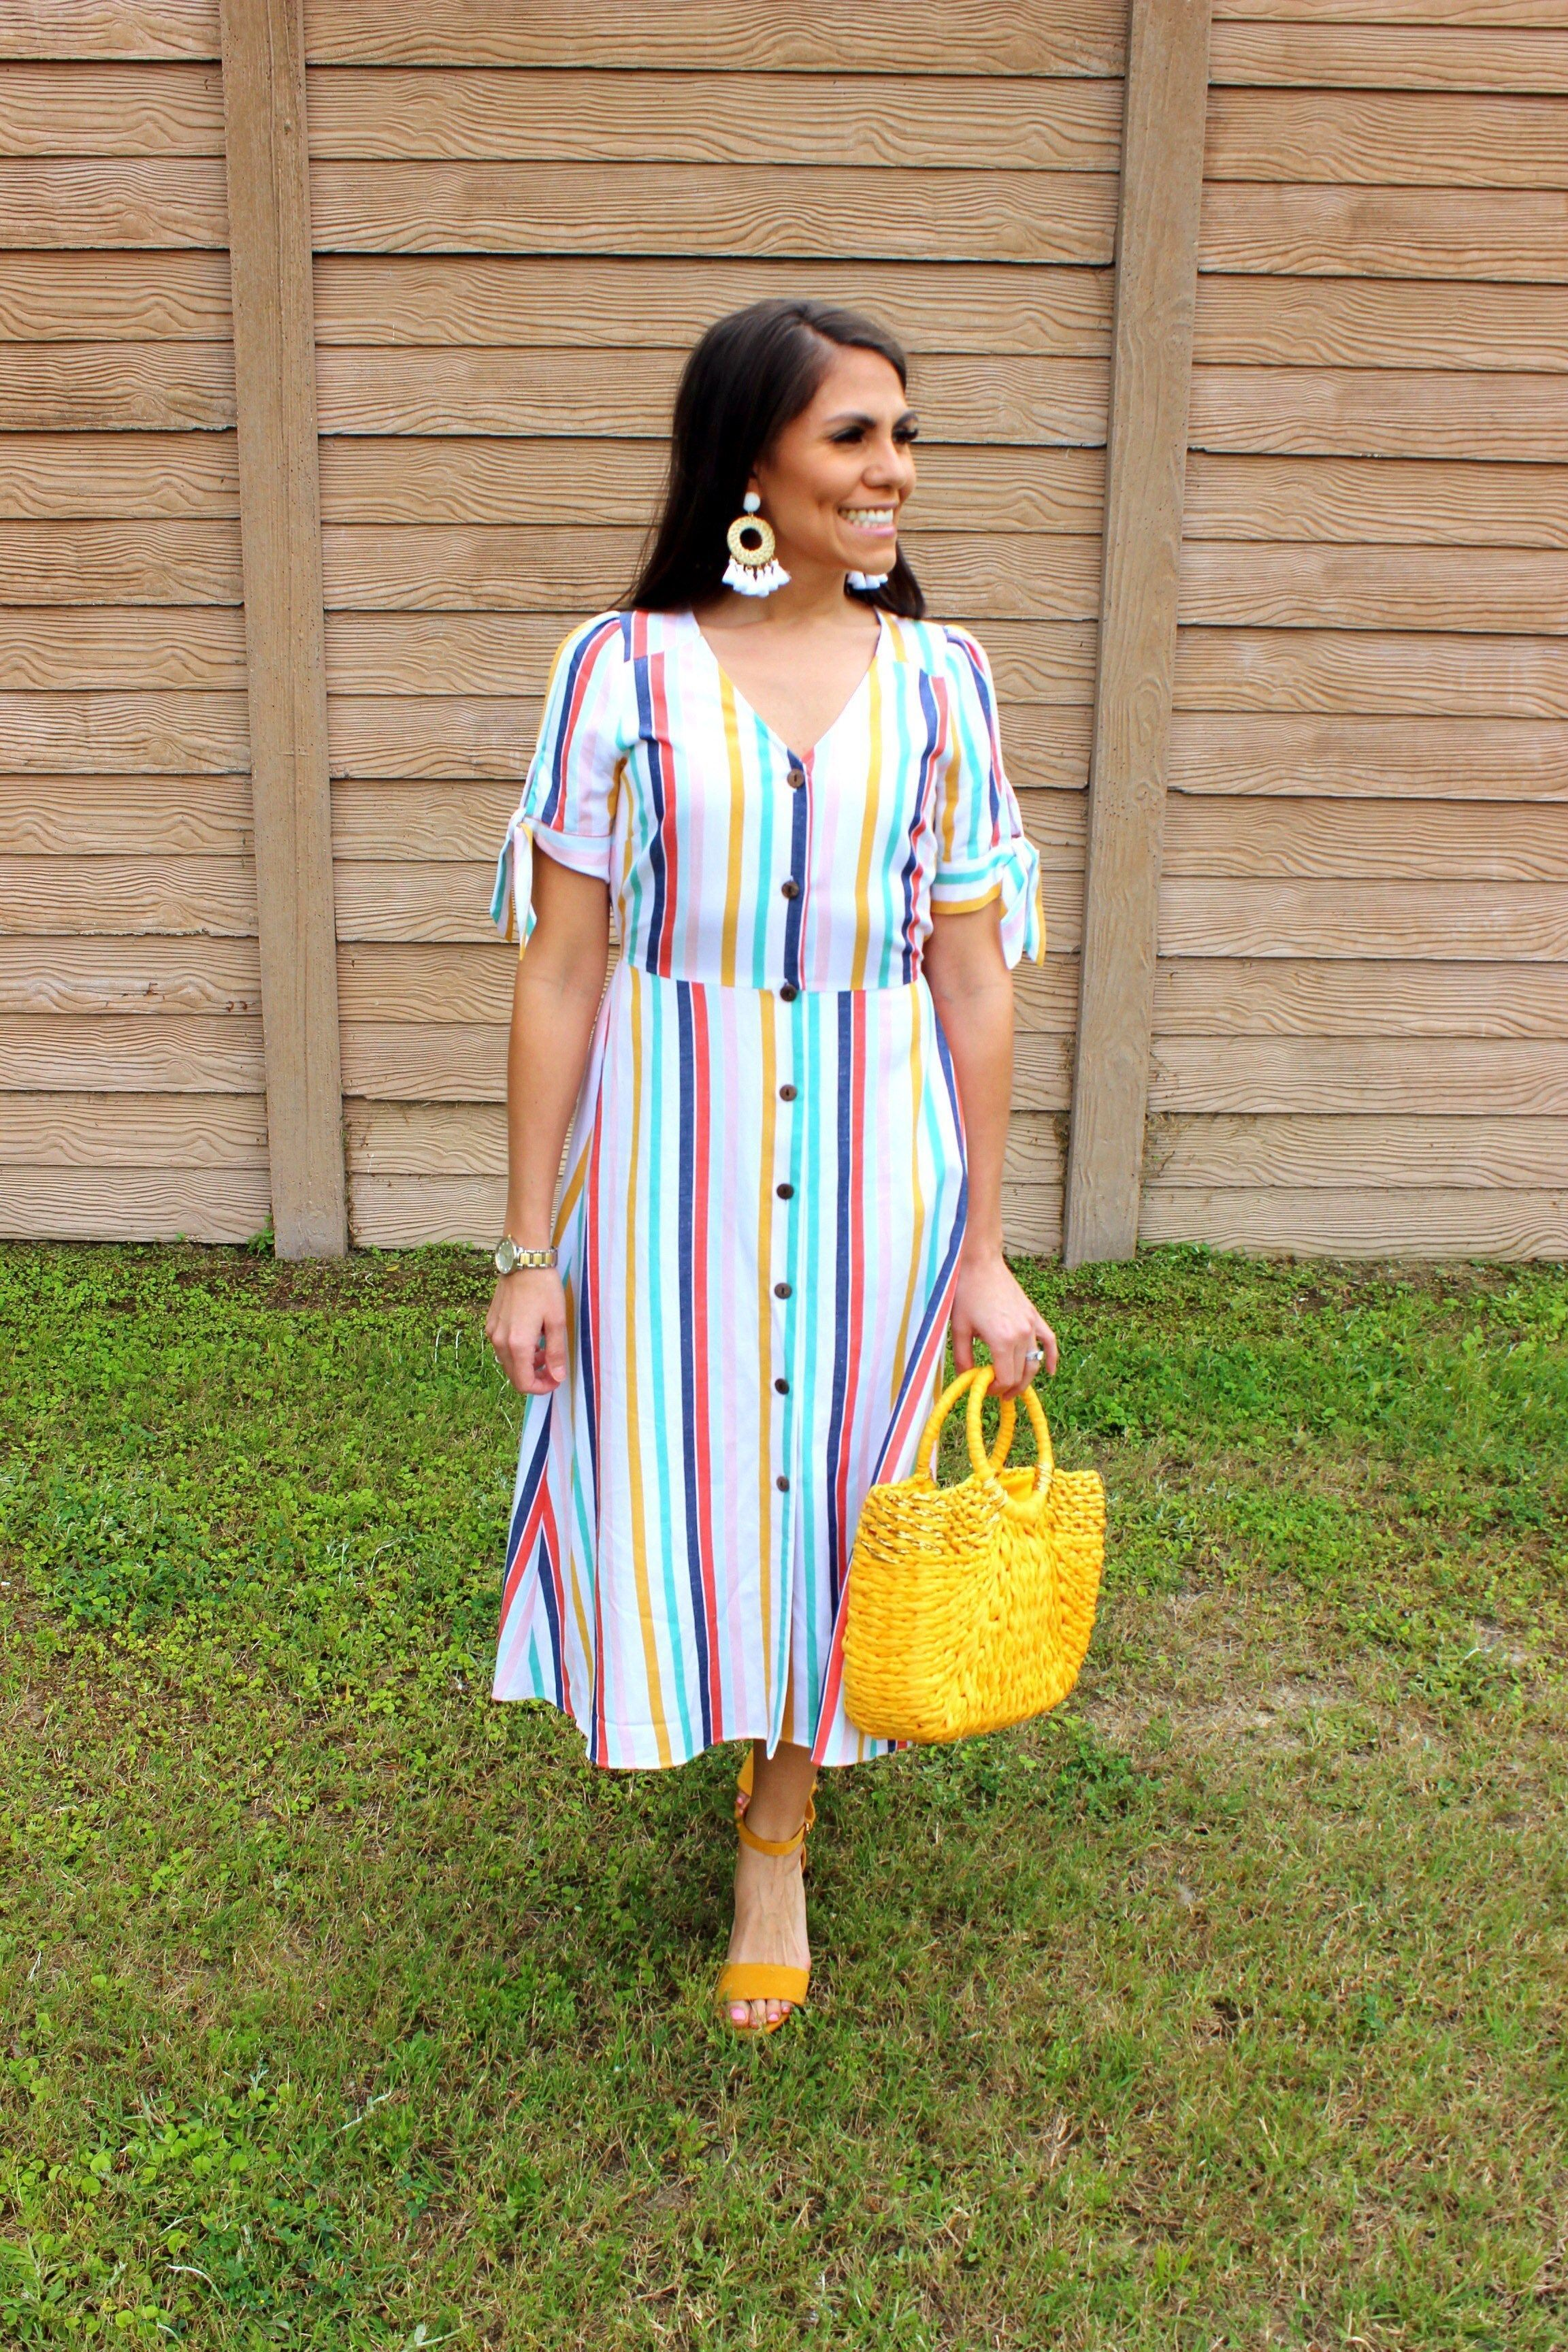 Lovely In Striped Dress Jcpenney Try On Haul May 2019 Lovely In Pink Pursesjcpenney Colorful Fashion Fashion Striped Dress [ 3456 x 2304 Pixel ]